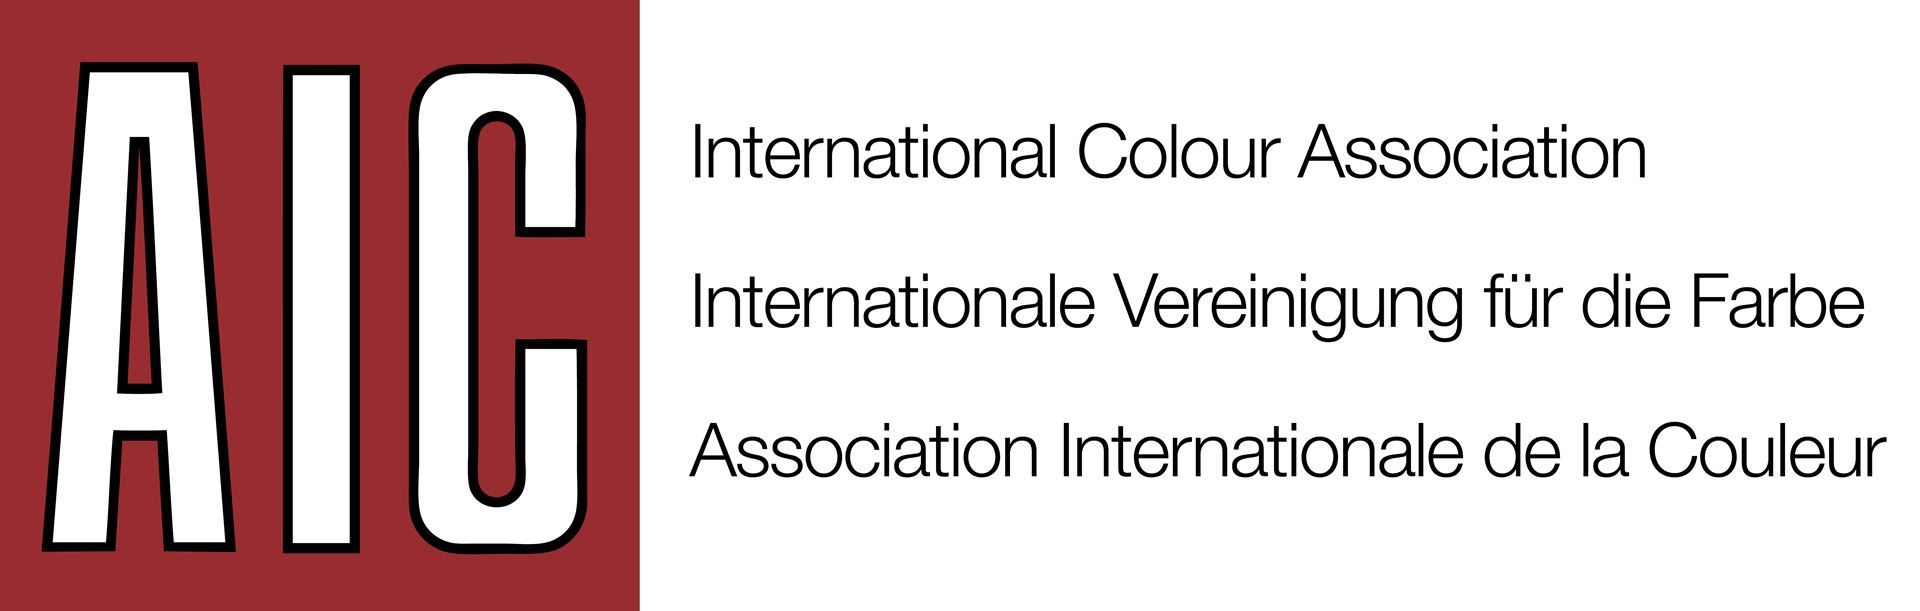 Association De Couleur Peinture aic - international colour association - home